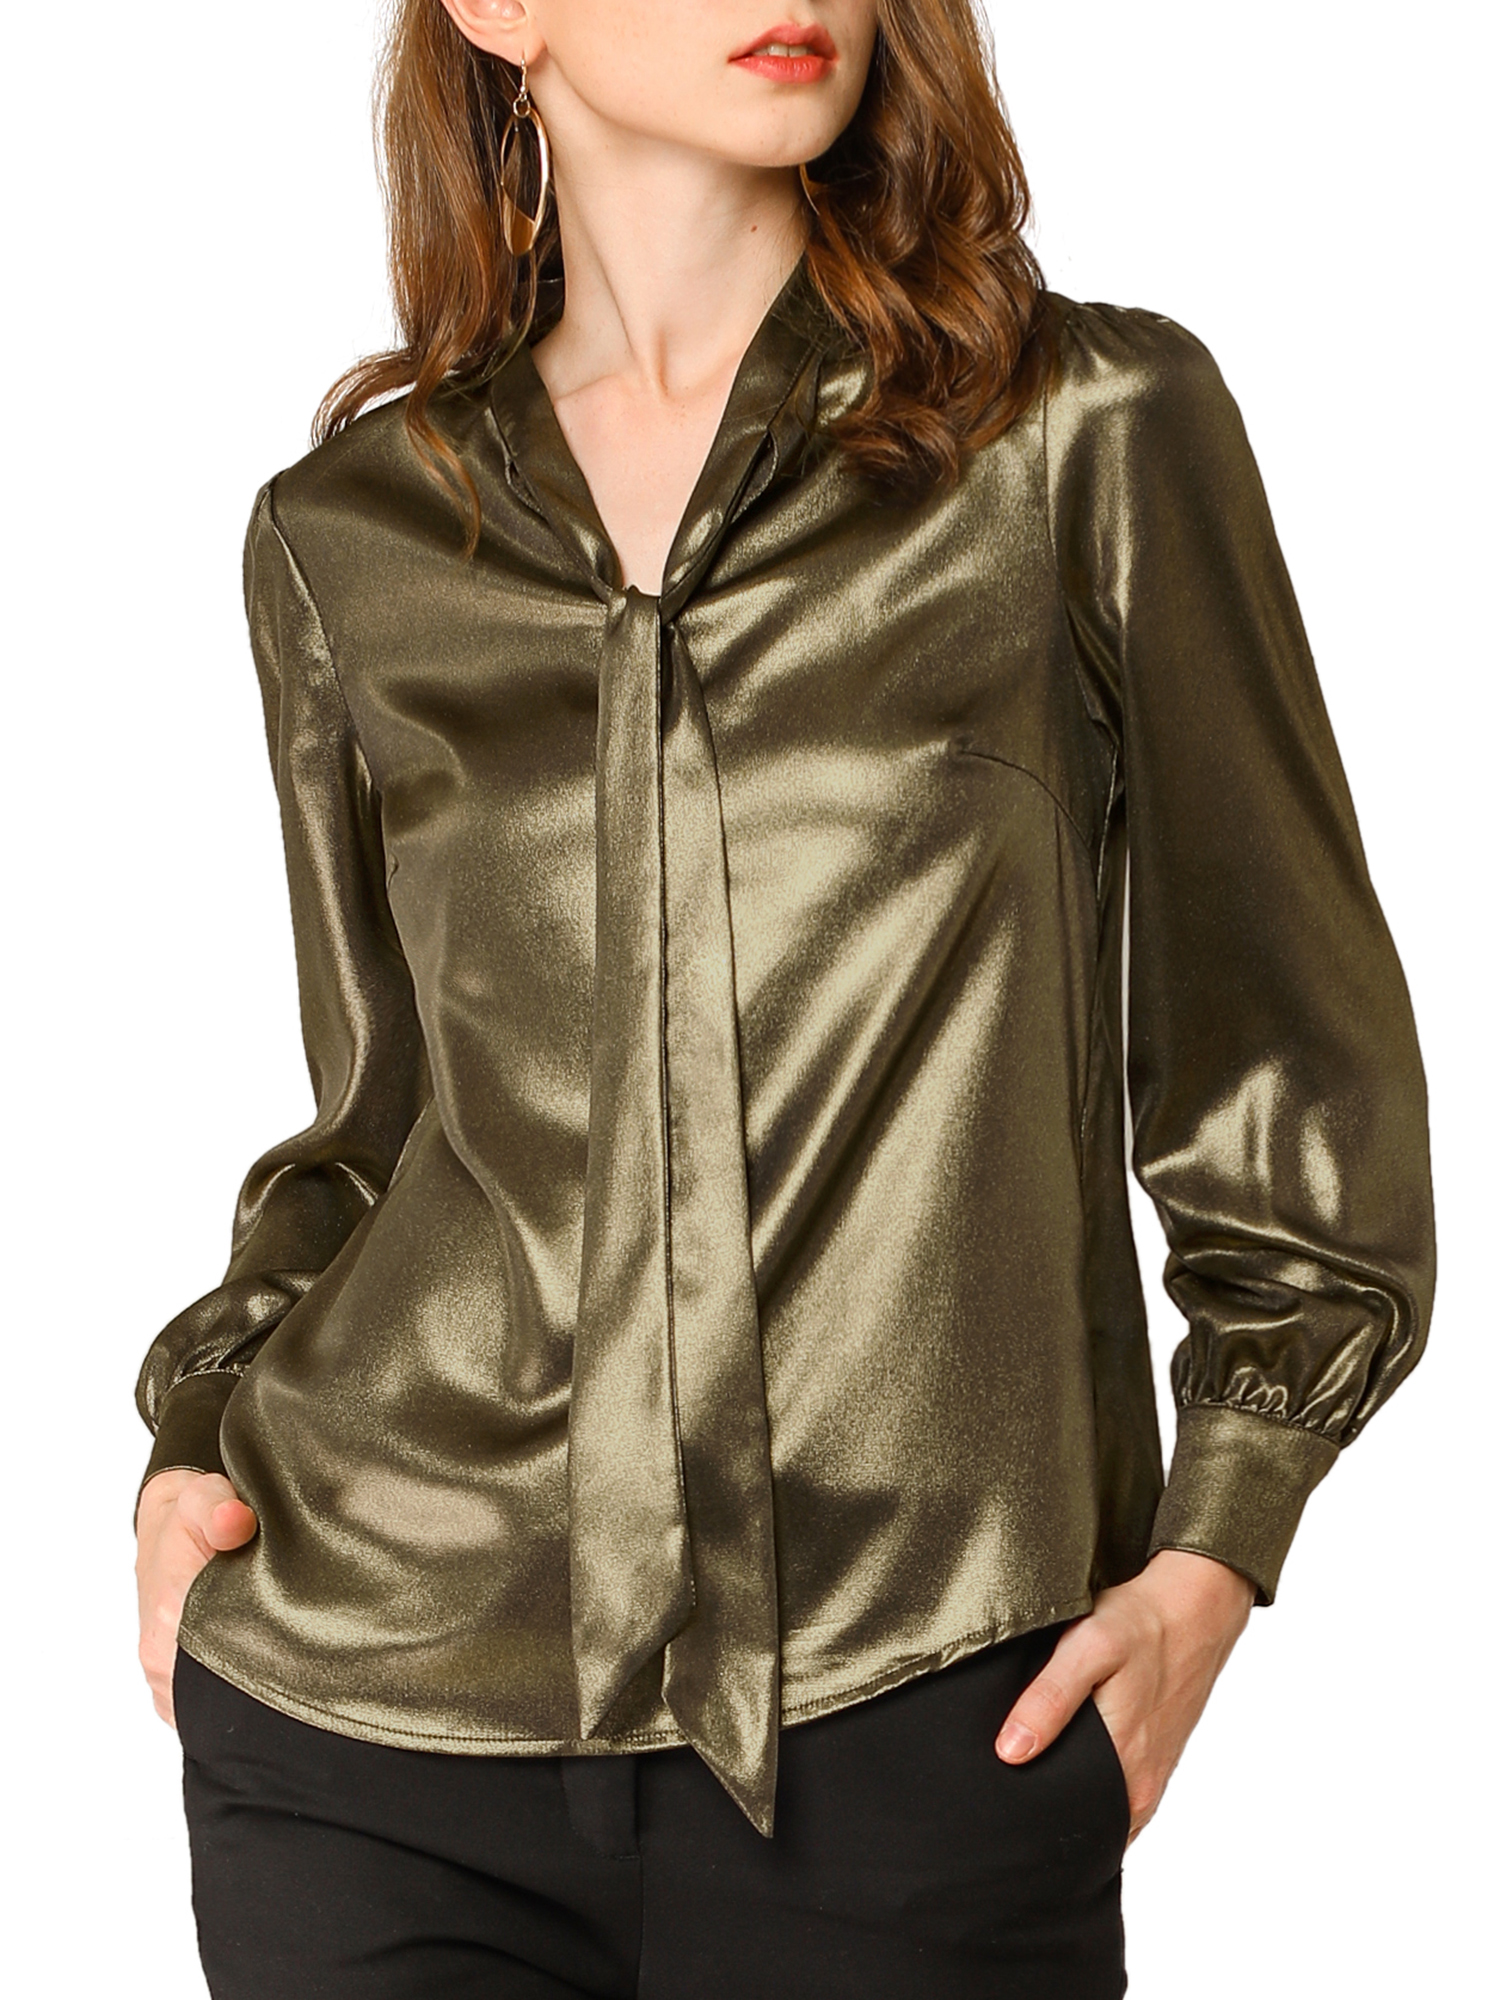 Details about  /3 Pair Sleeve Holder Gold Silver Blouse Shirt